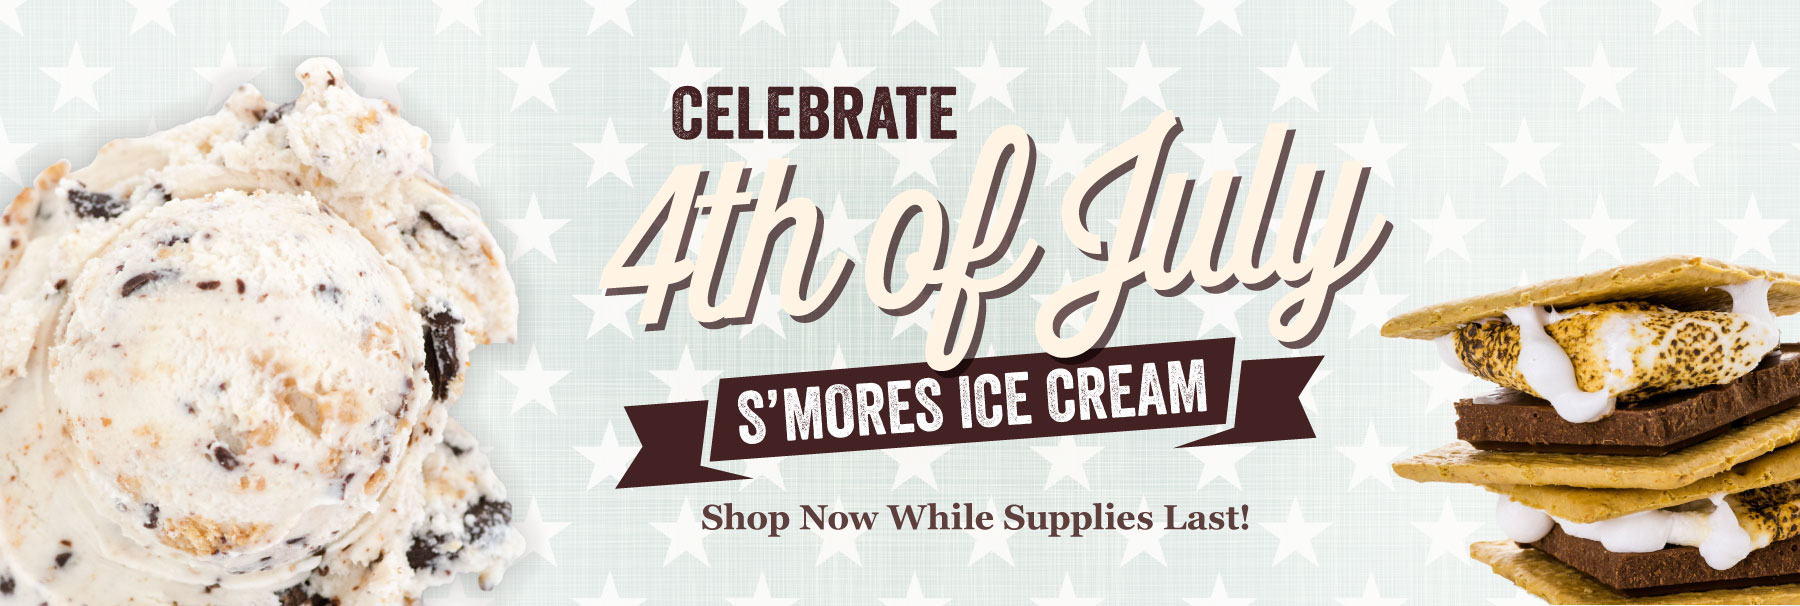 Smore Ice Cream Available Now